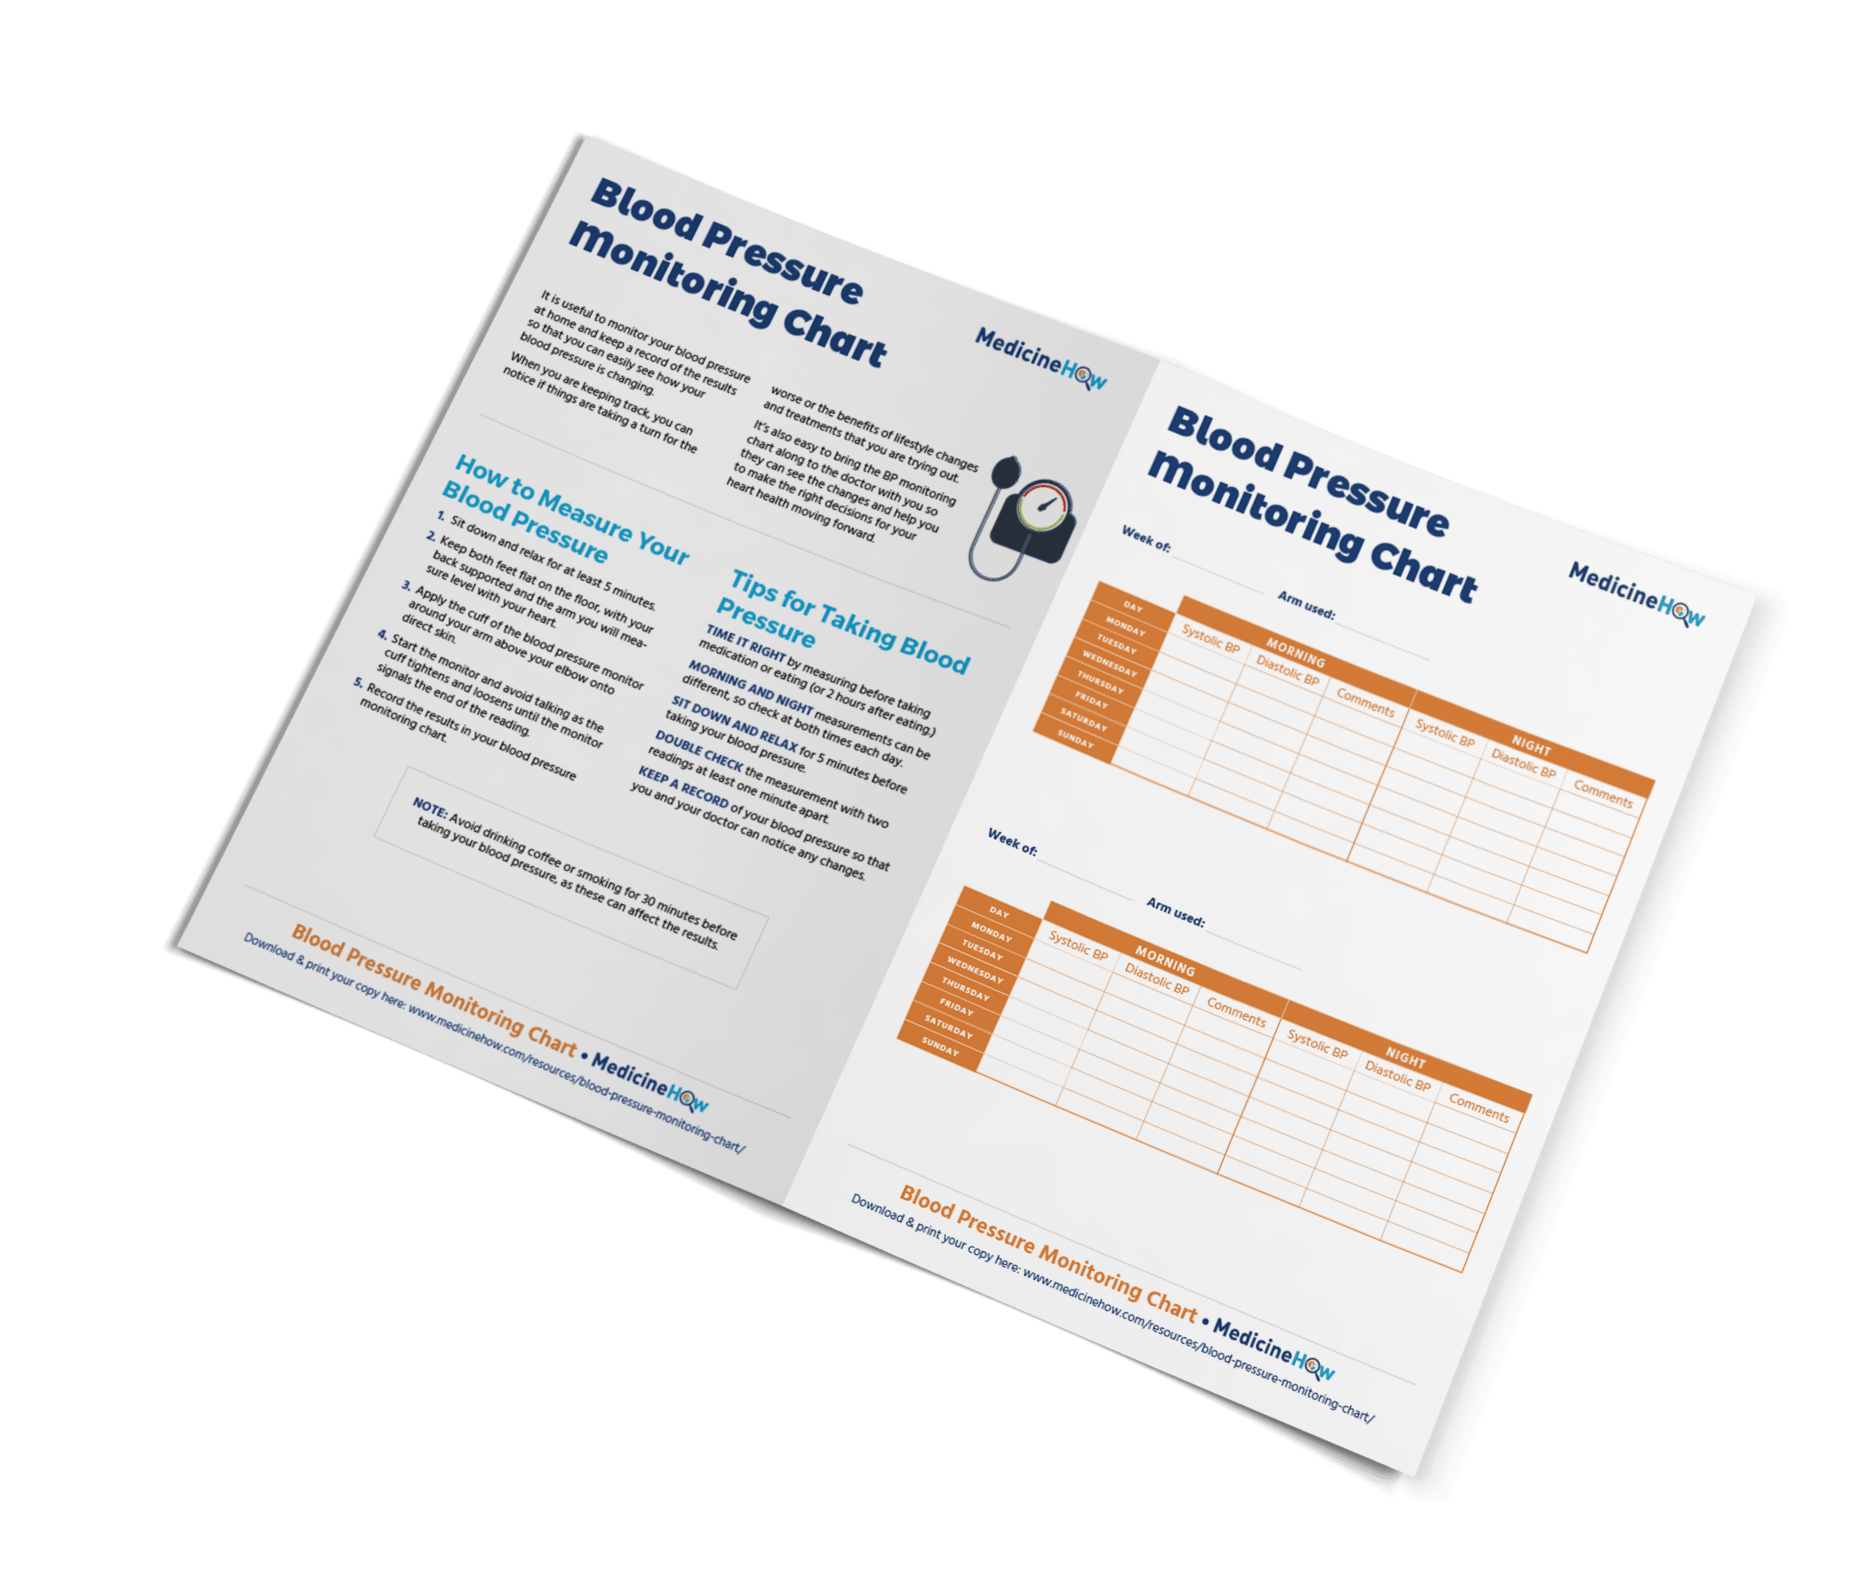 Blood pressure monitoring chart medicinehow blood pressure monitoring chart keep track of changes in blood pressure so you can talk to your doctor and take action if needed nvjuhfo Choice Image